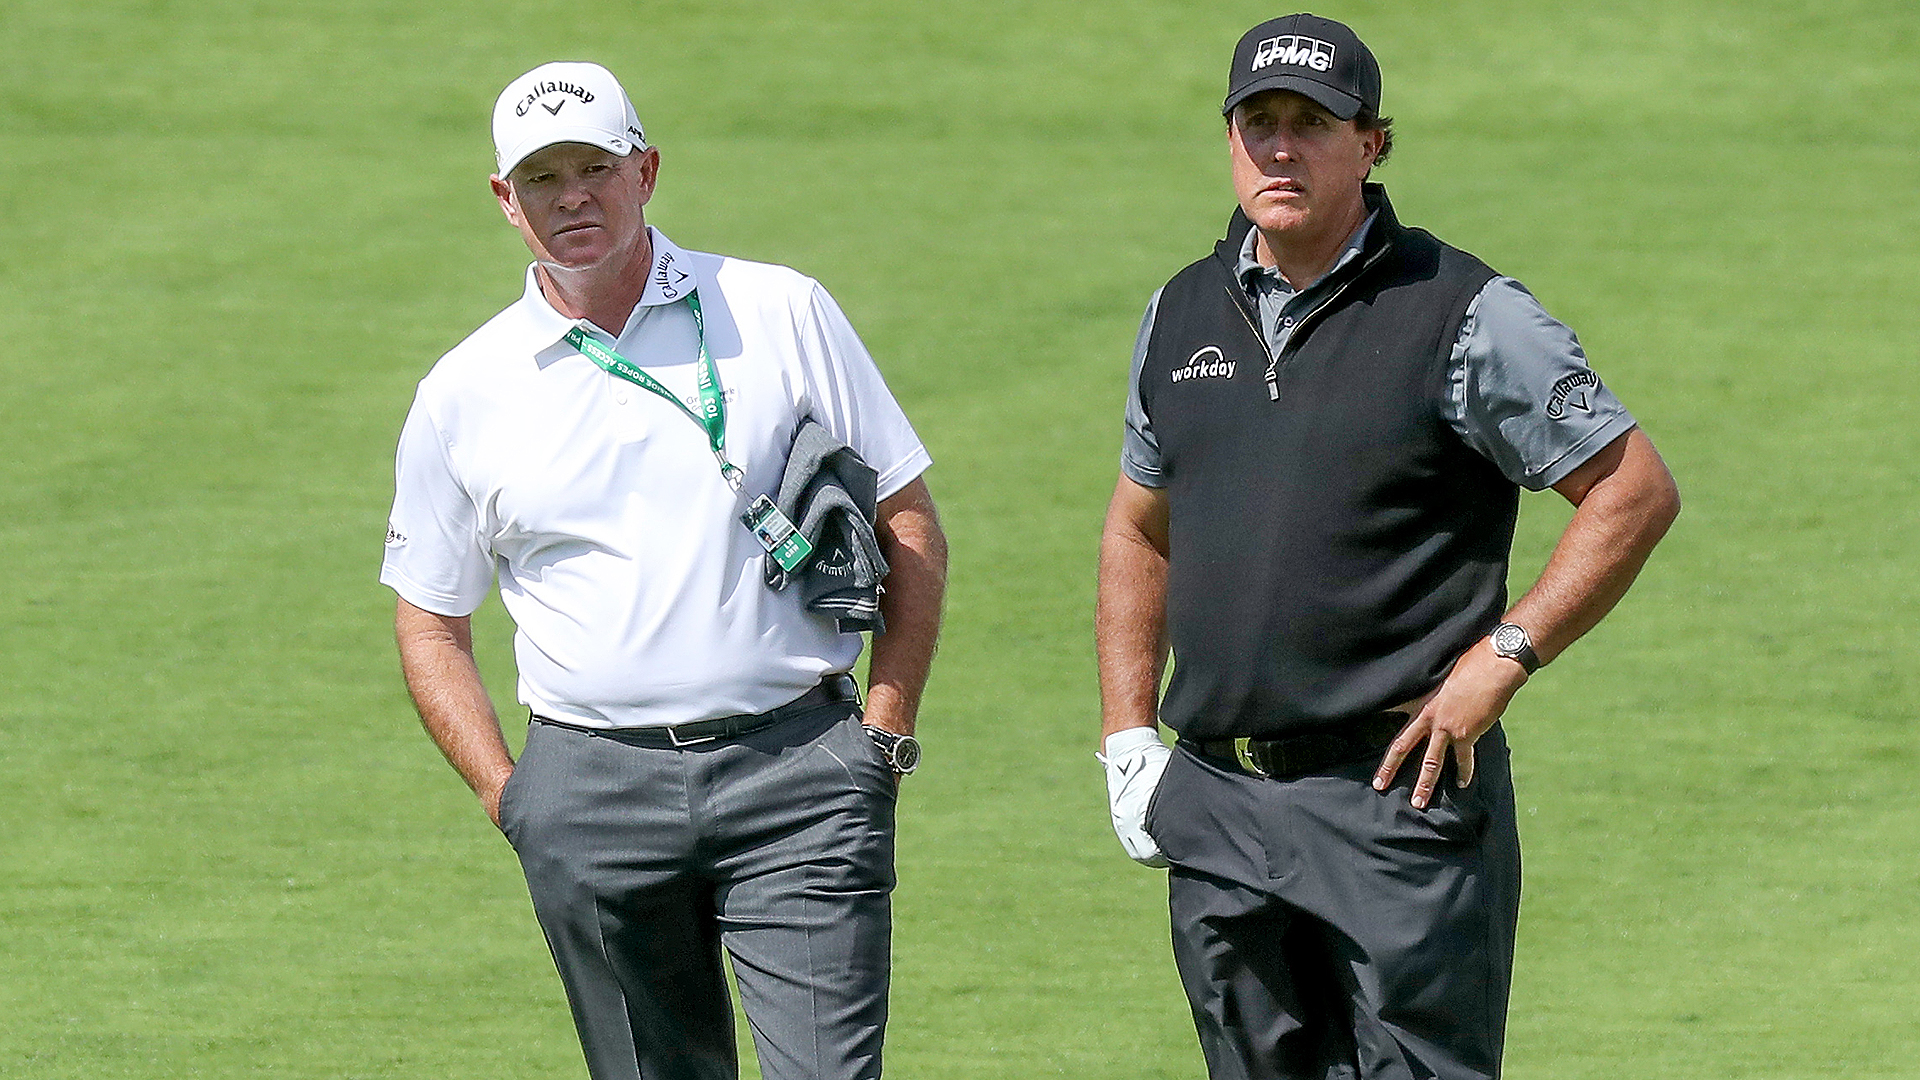 Andrew Getson and Phil Mickelson